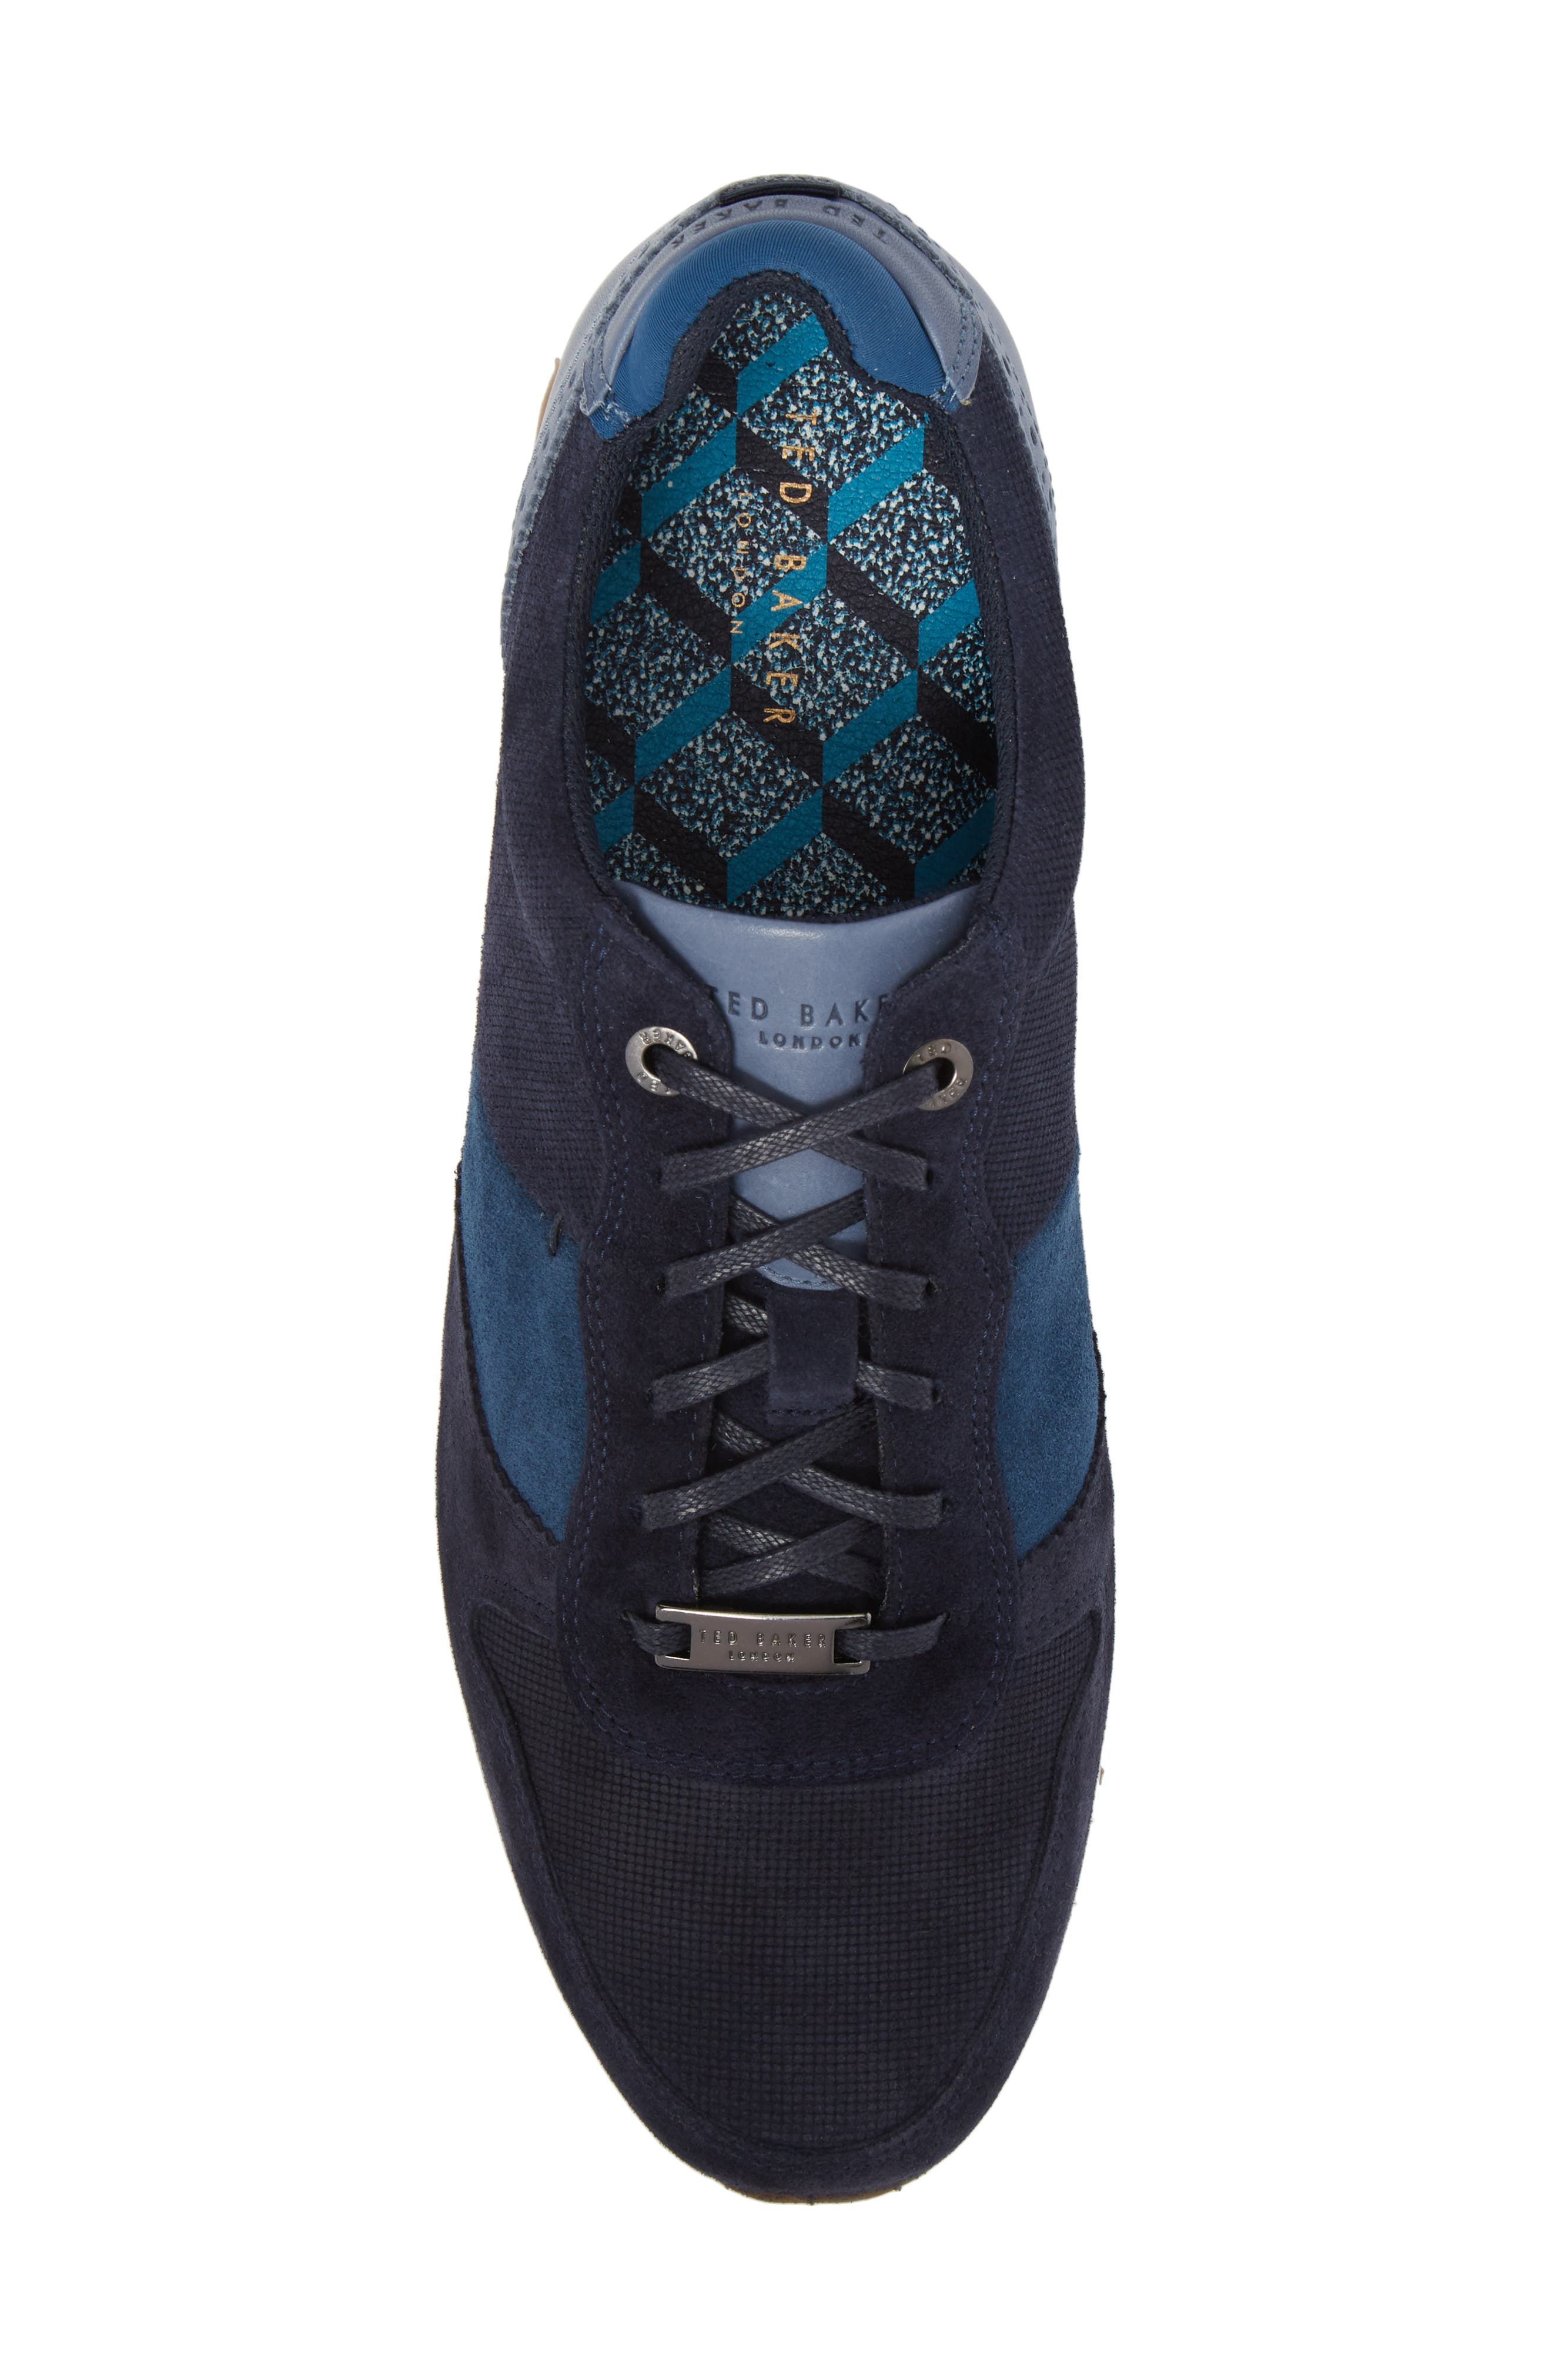 Shindls Low Top Sneaker,                             Alternate thumbnail 5, color,                             BLUE LEATHER/ SUEDE